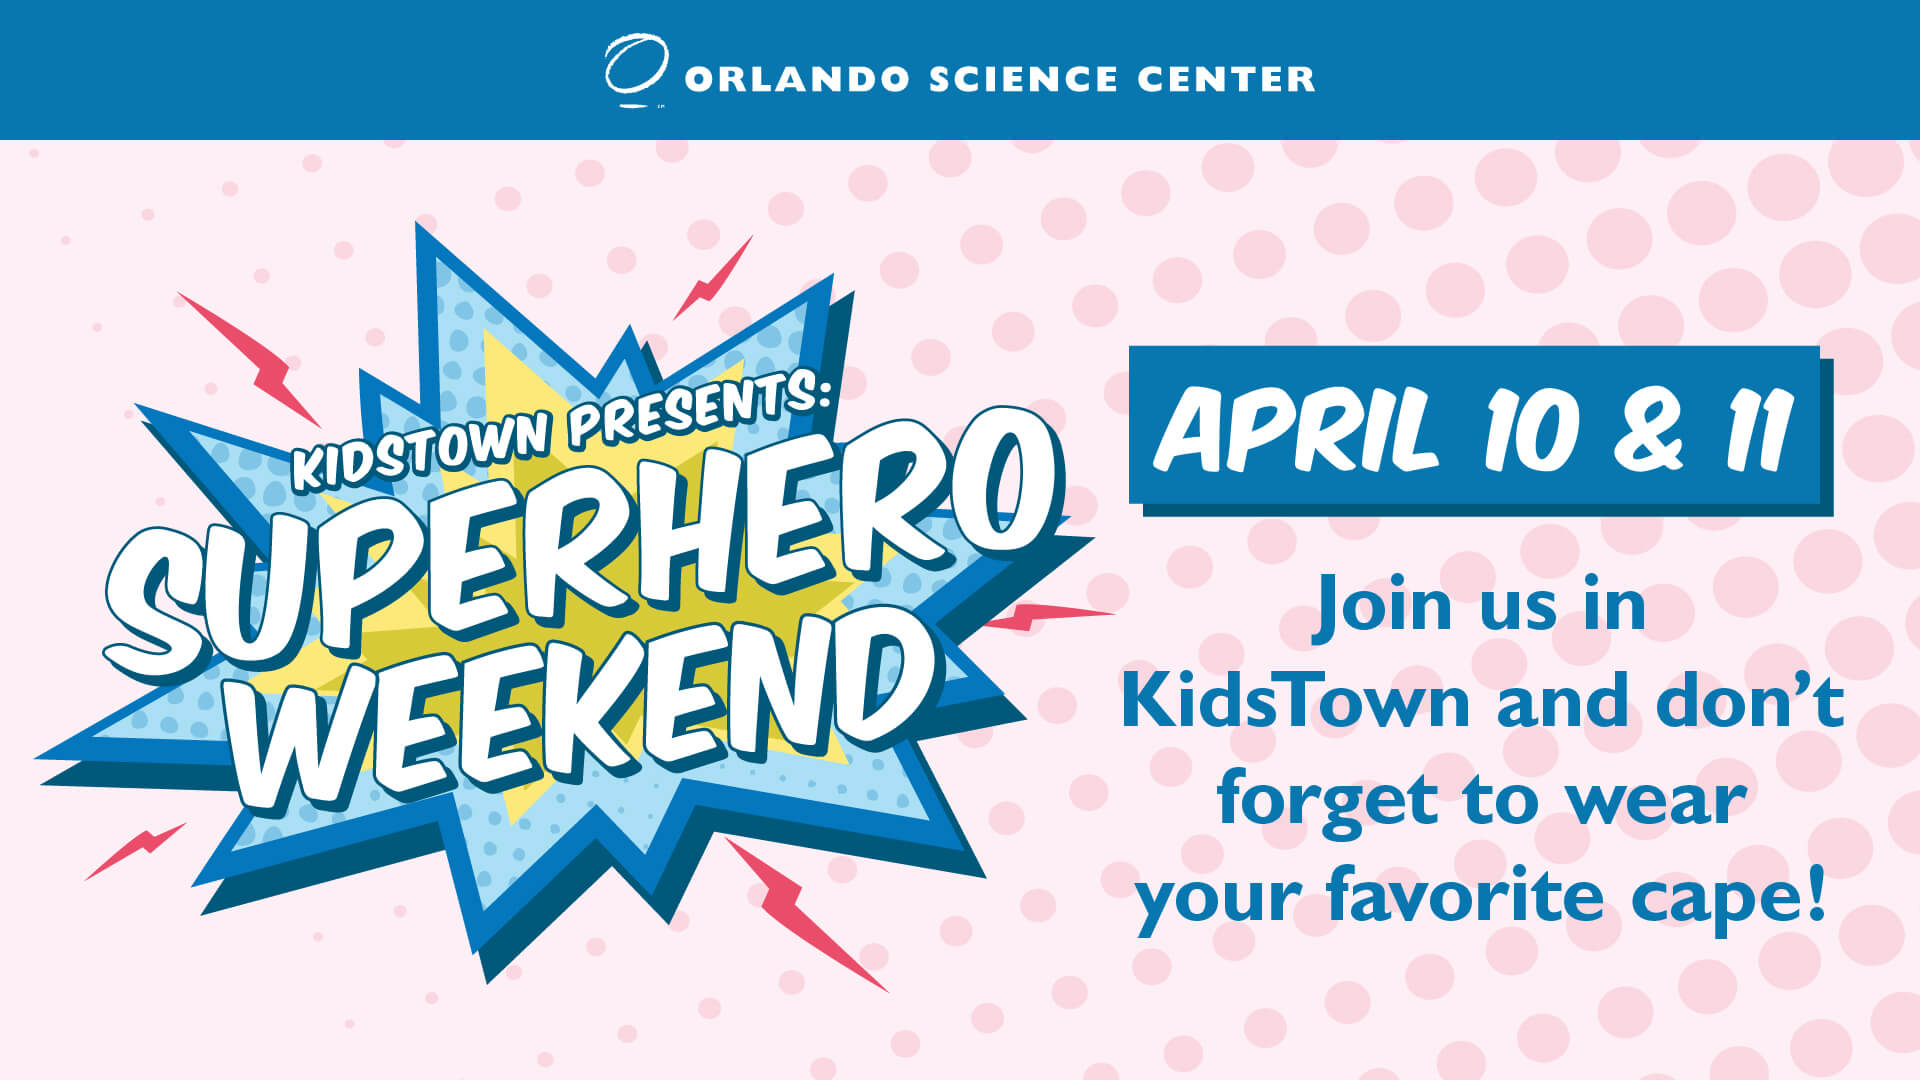 Superhero Weekend April 10 & 11. Join us in KidsTown and don't forget to wear your favorite cape